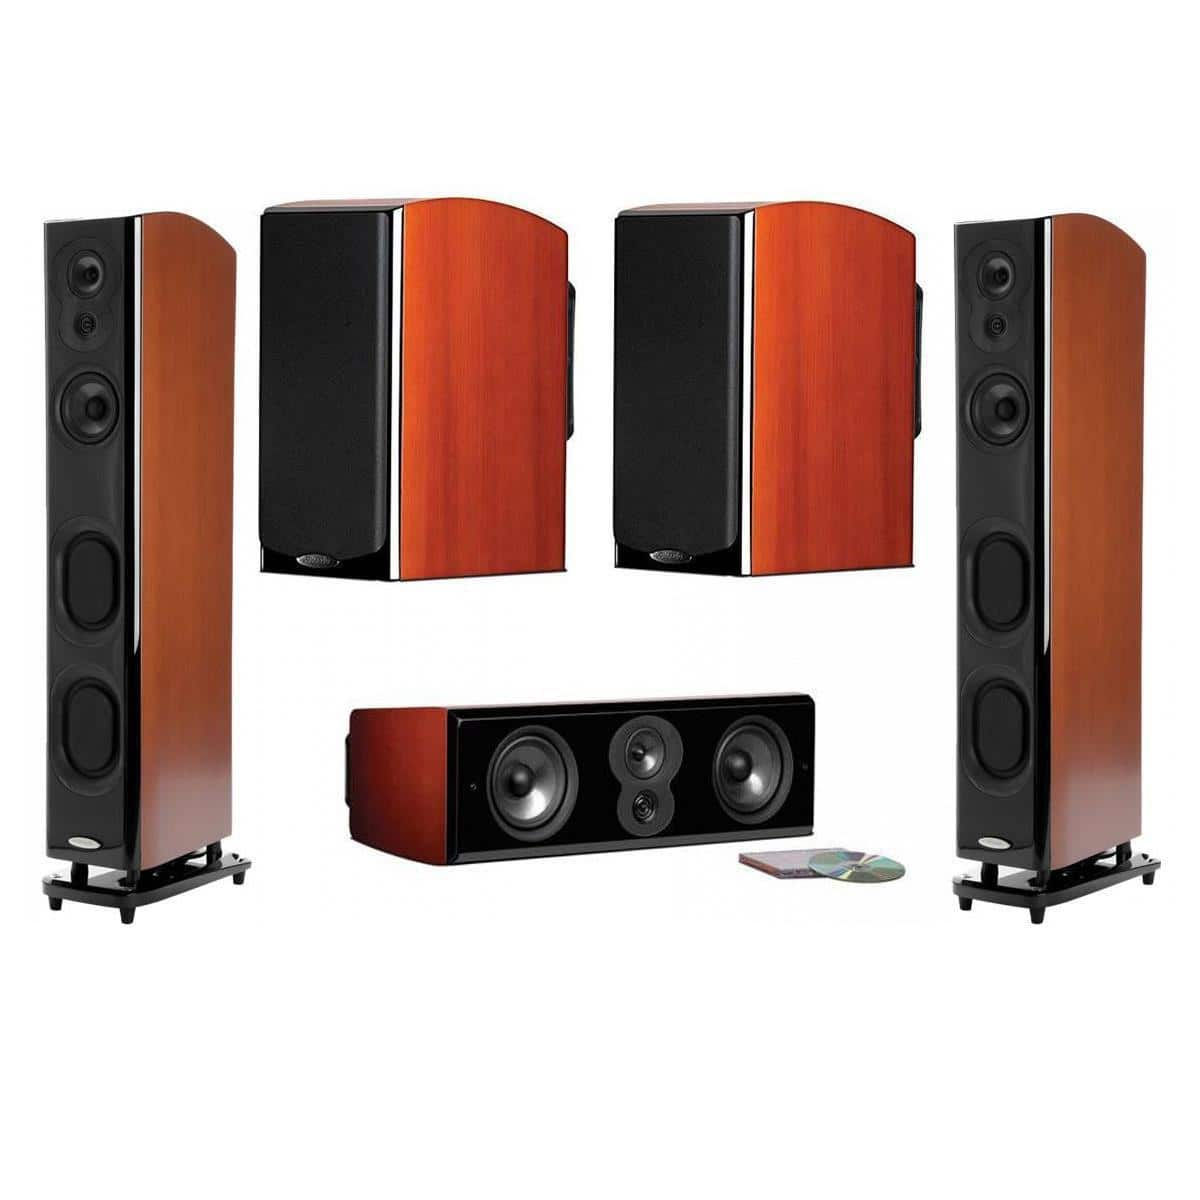 Polk LSi Speaker Bundles (some w/ RX-A3070): m705 (pair) + m703 (pair) + m706c from $1500 to $3200 & More + Free S&H